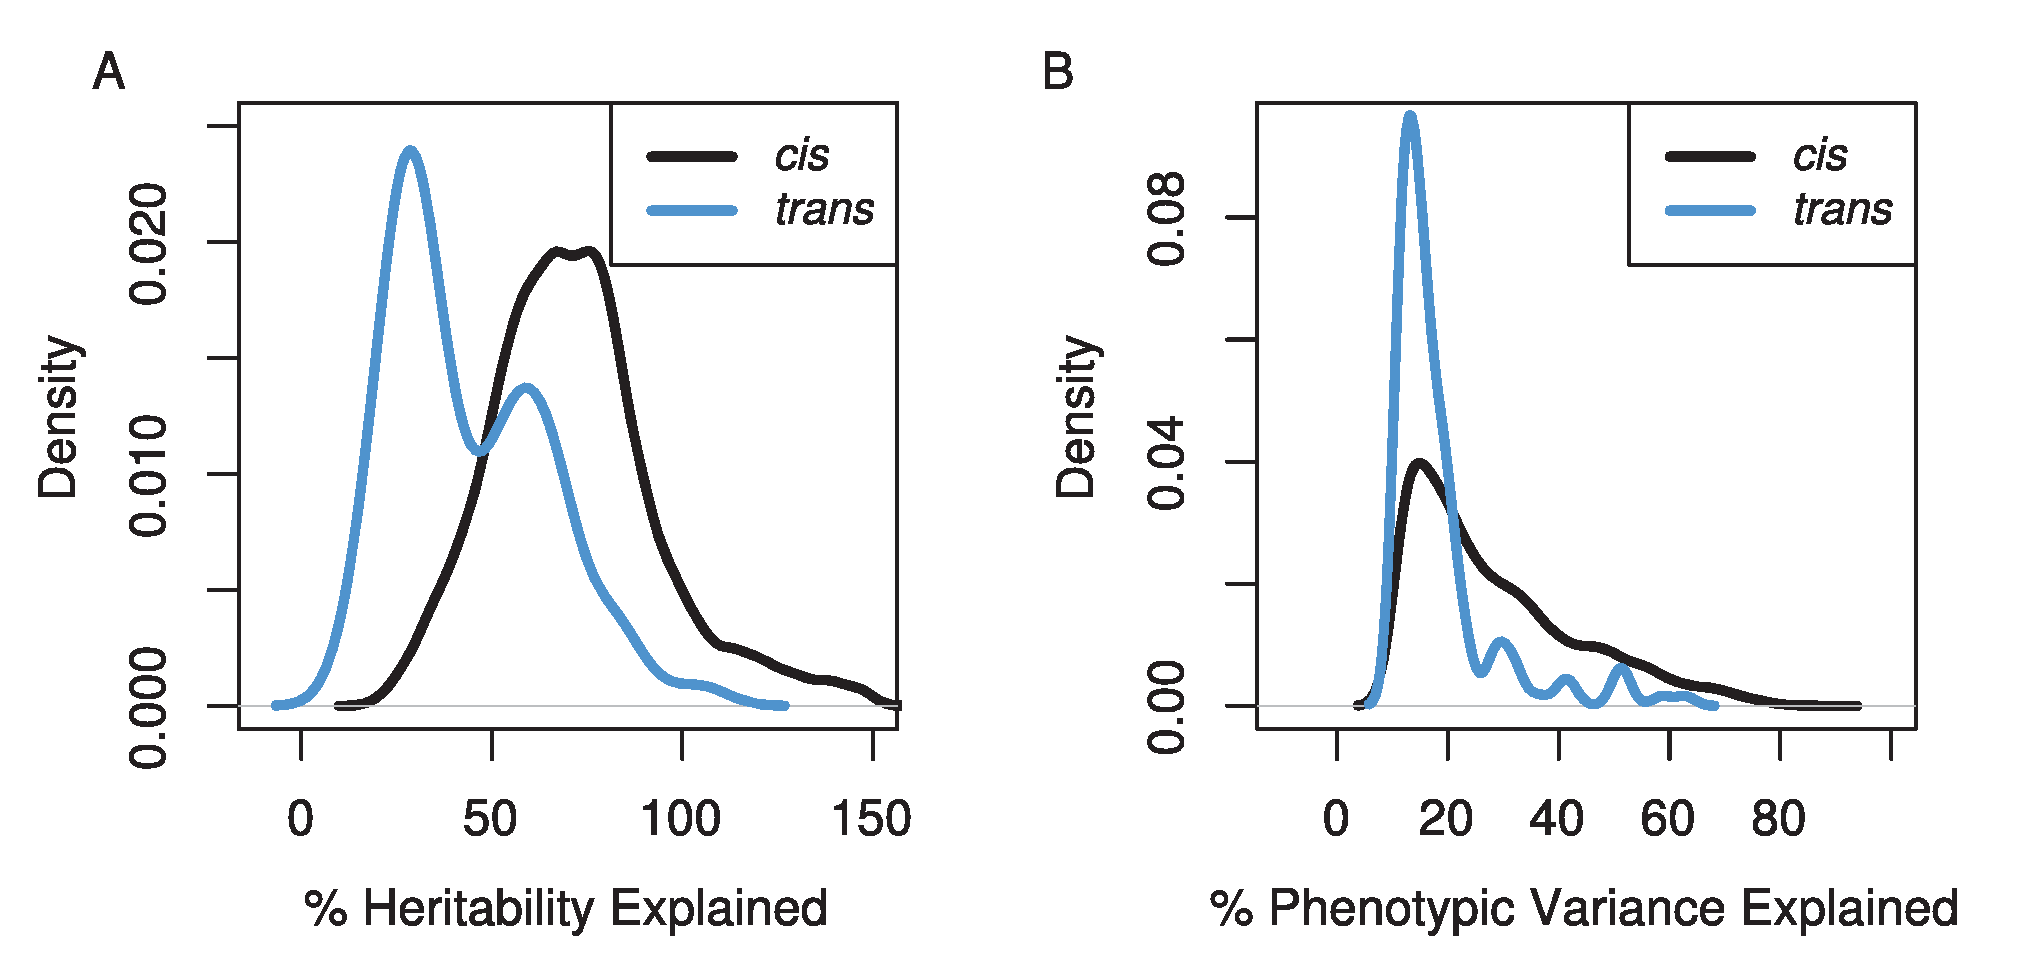 The distributions of the percentage of the genetic variation (A) and phenotypic variation (B) explained for <i>cis</i>- (black line) and <i>trans</i>- (blue line) eQTL.